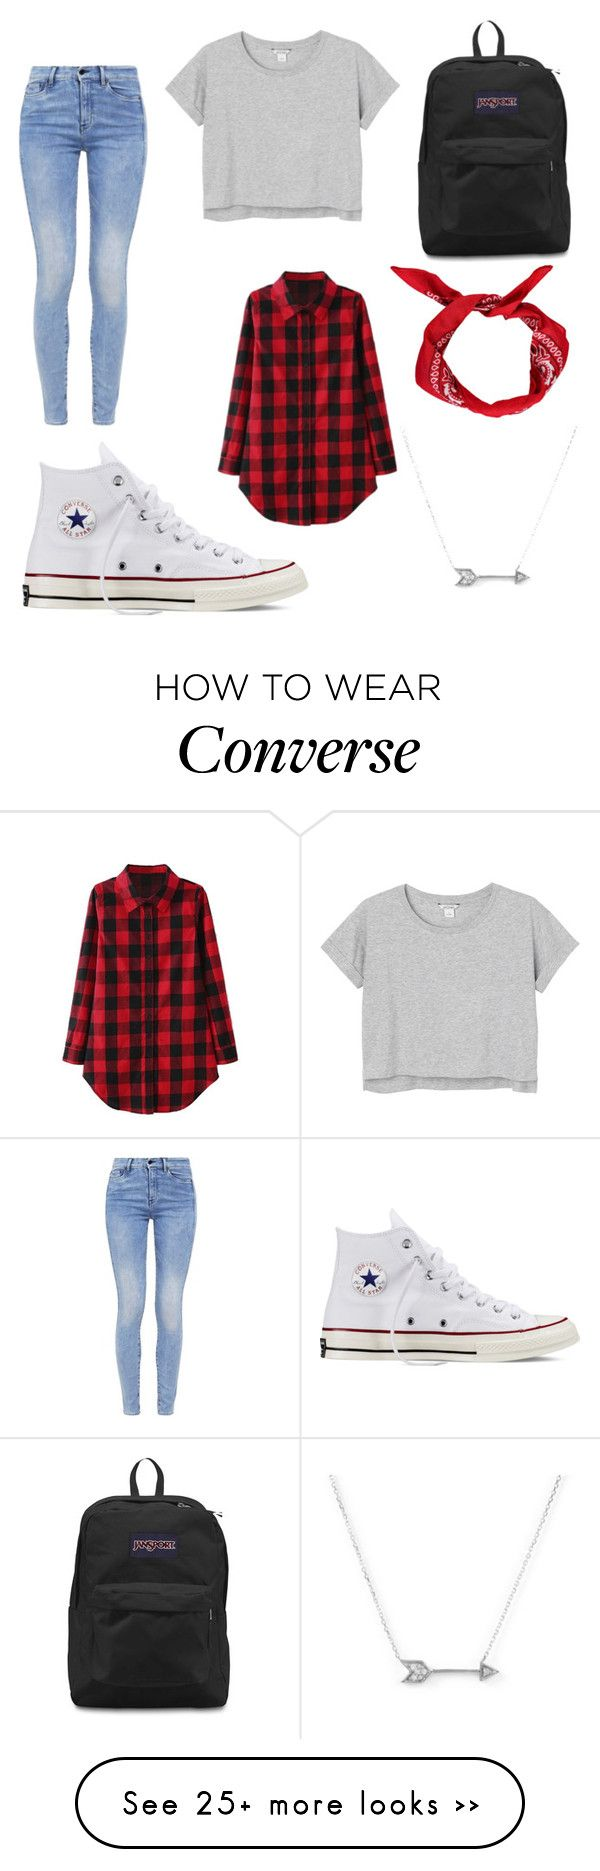 """Hipster girl"" by sachim1 on Polyvore featuring мода, Converse, G-Star, Monki, JanSport и Adina Reyter"